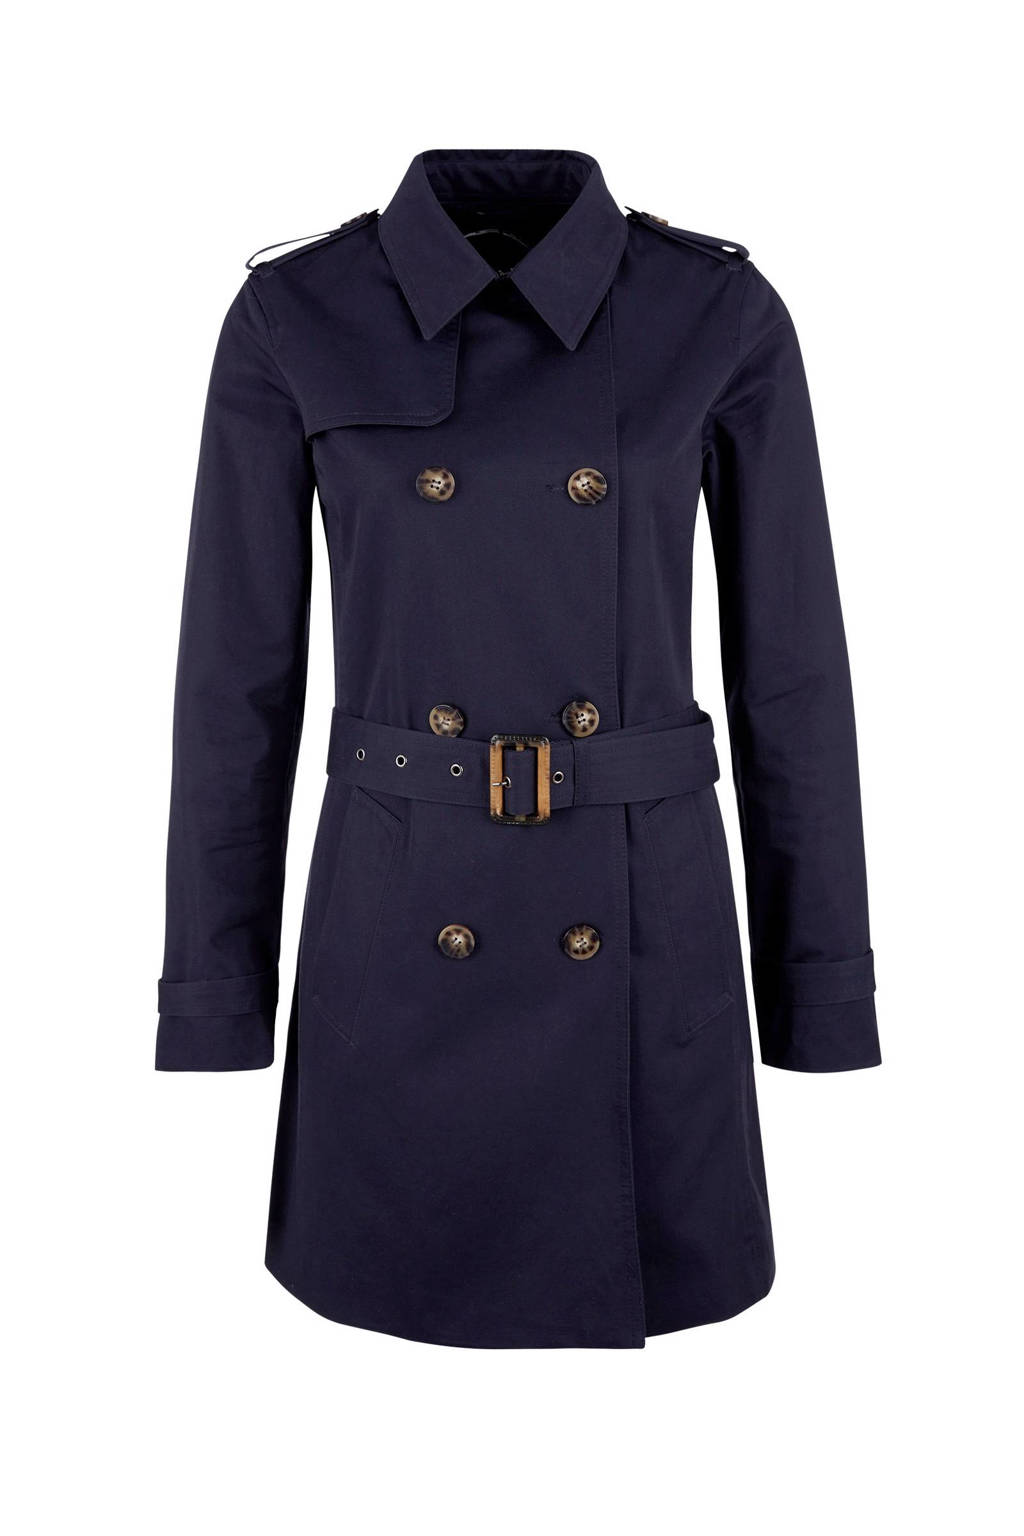 s.Oliver double breasted trenchcoat, Marine